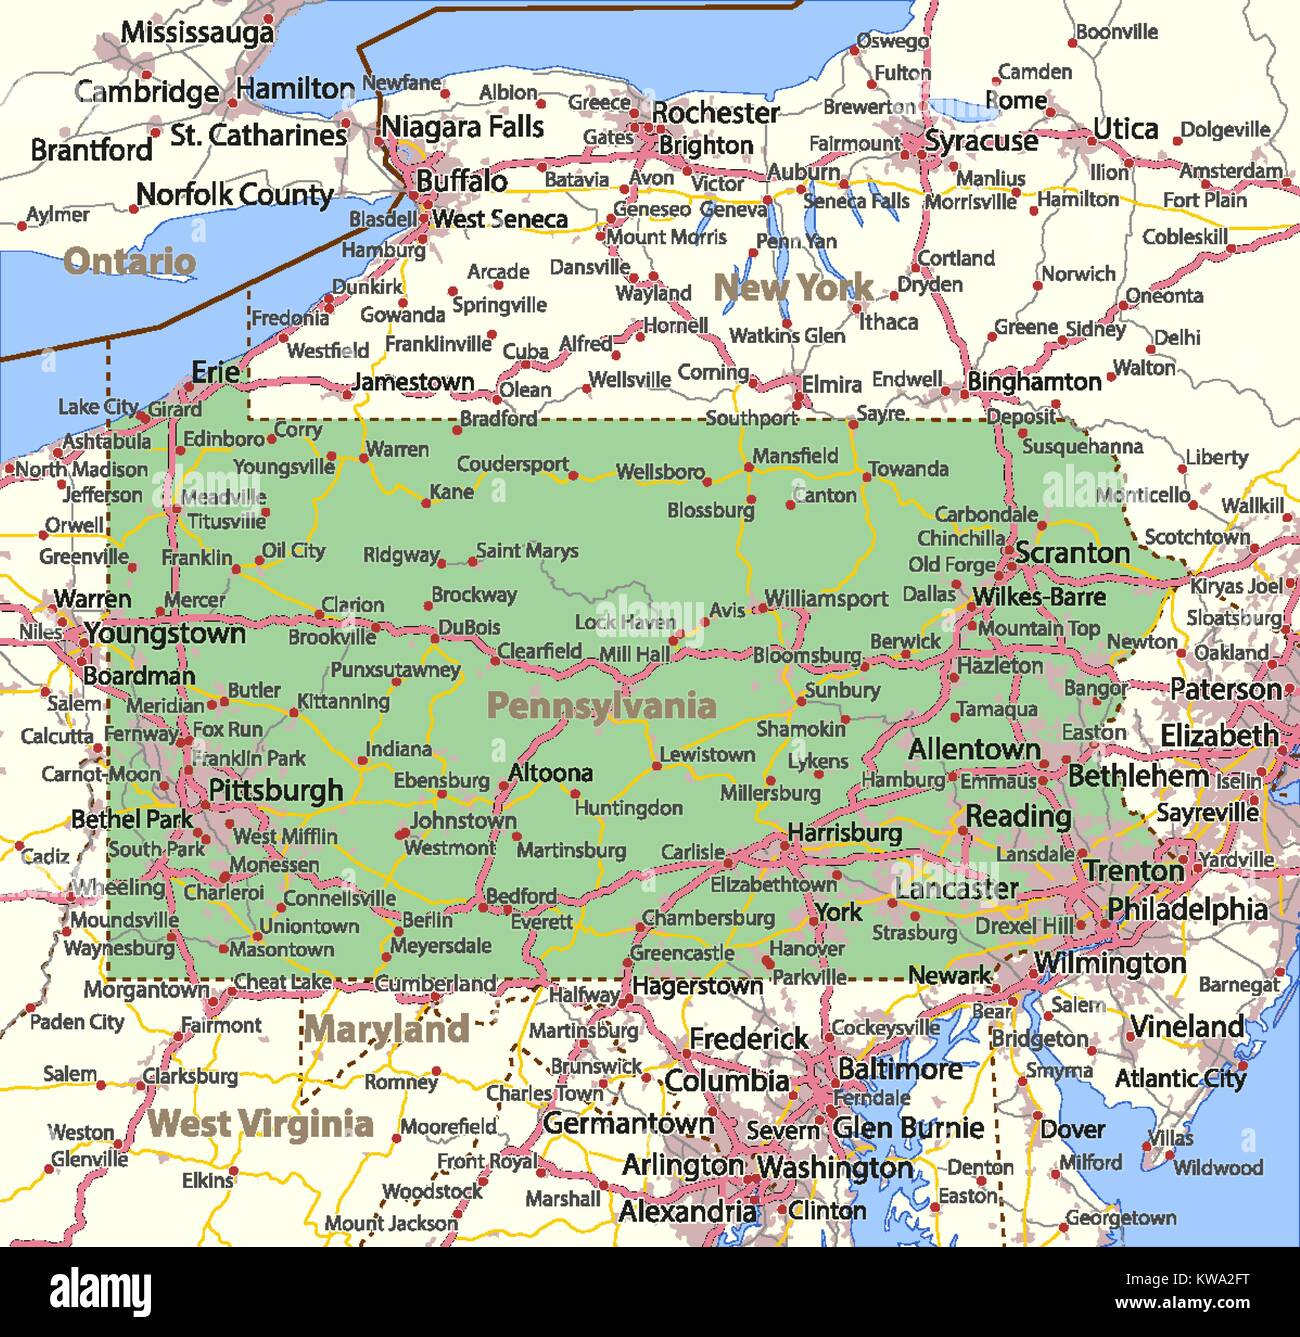 Map Of Pennsylvania Shows Country Borders Urban Areas Place Names